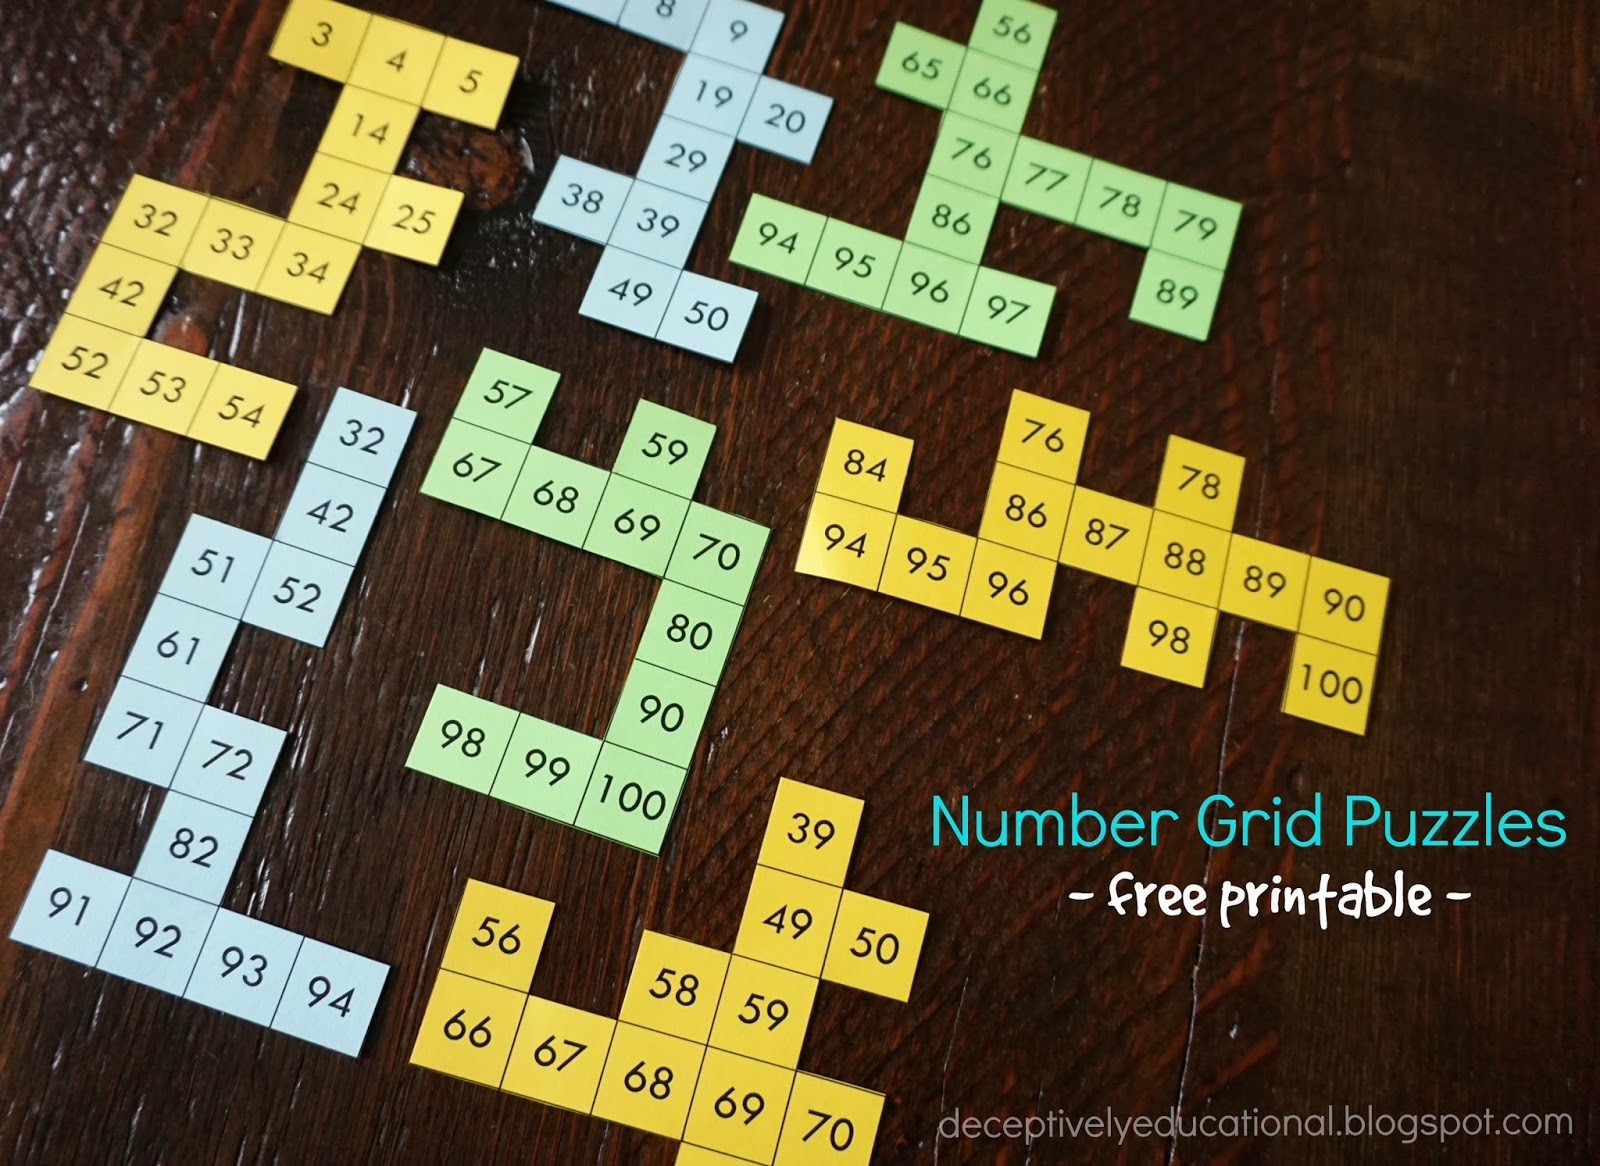 Addition And Subtraction Grid Puzzles - Printable Kenken Puzzle 7X7